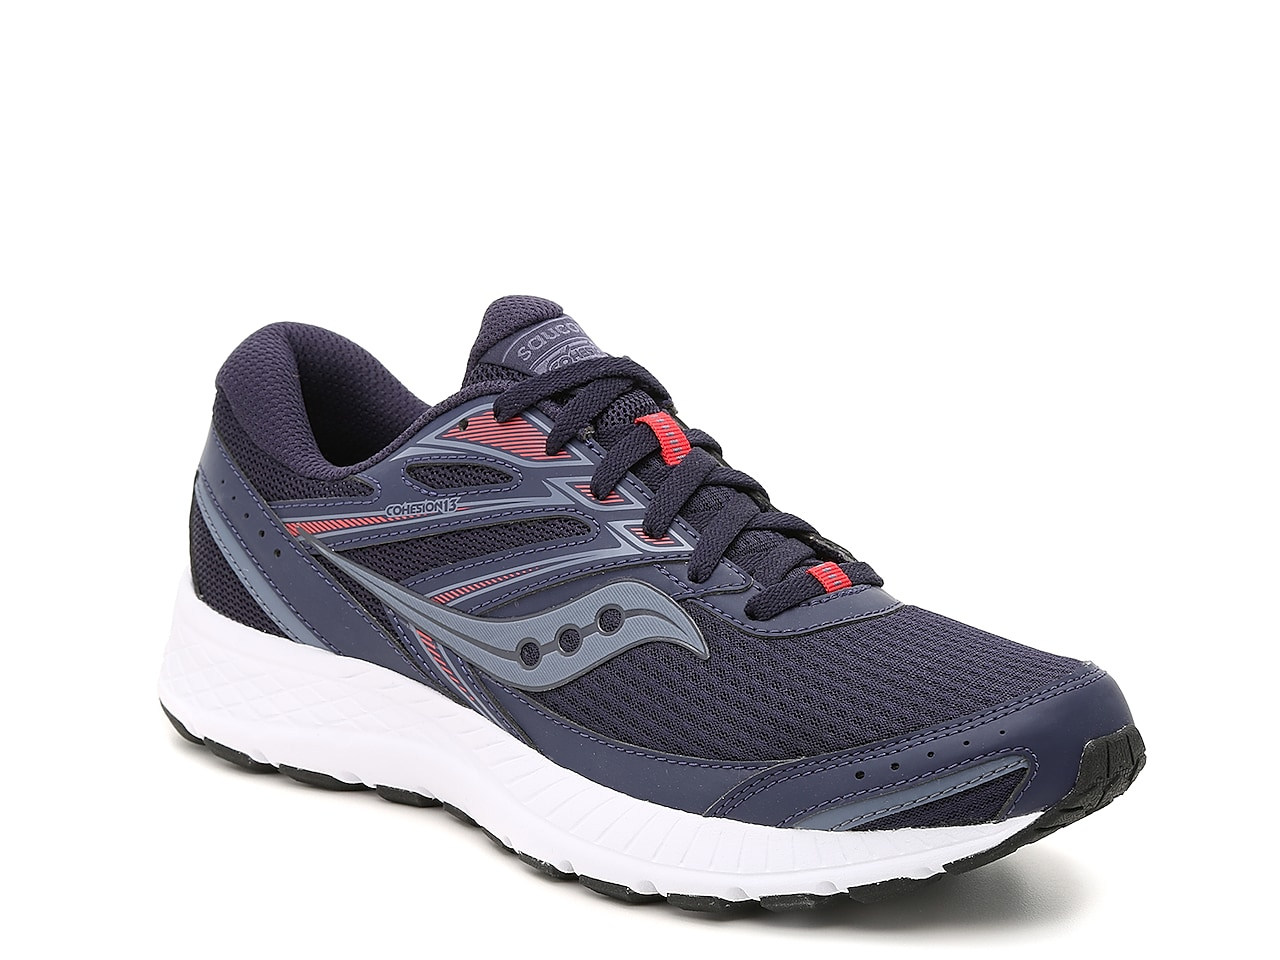 Cohesion 13 Running Shoe - Men's